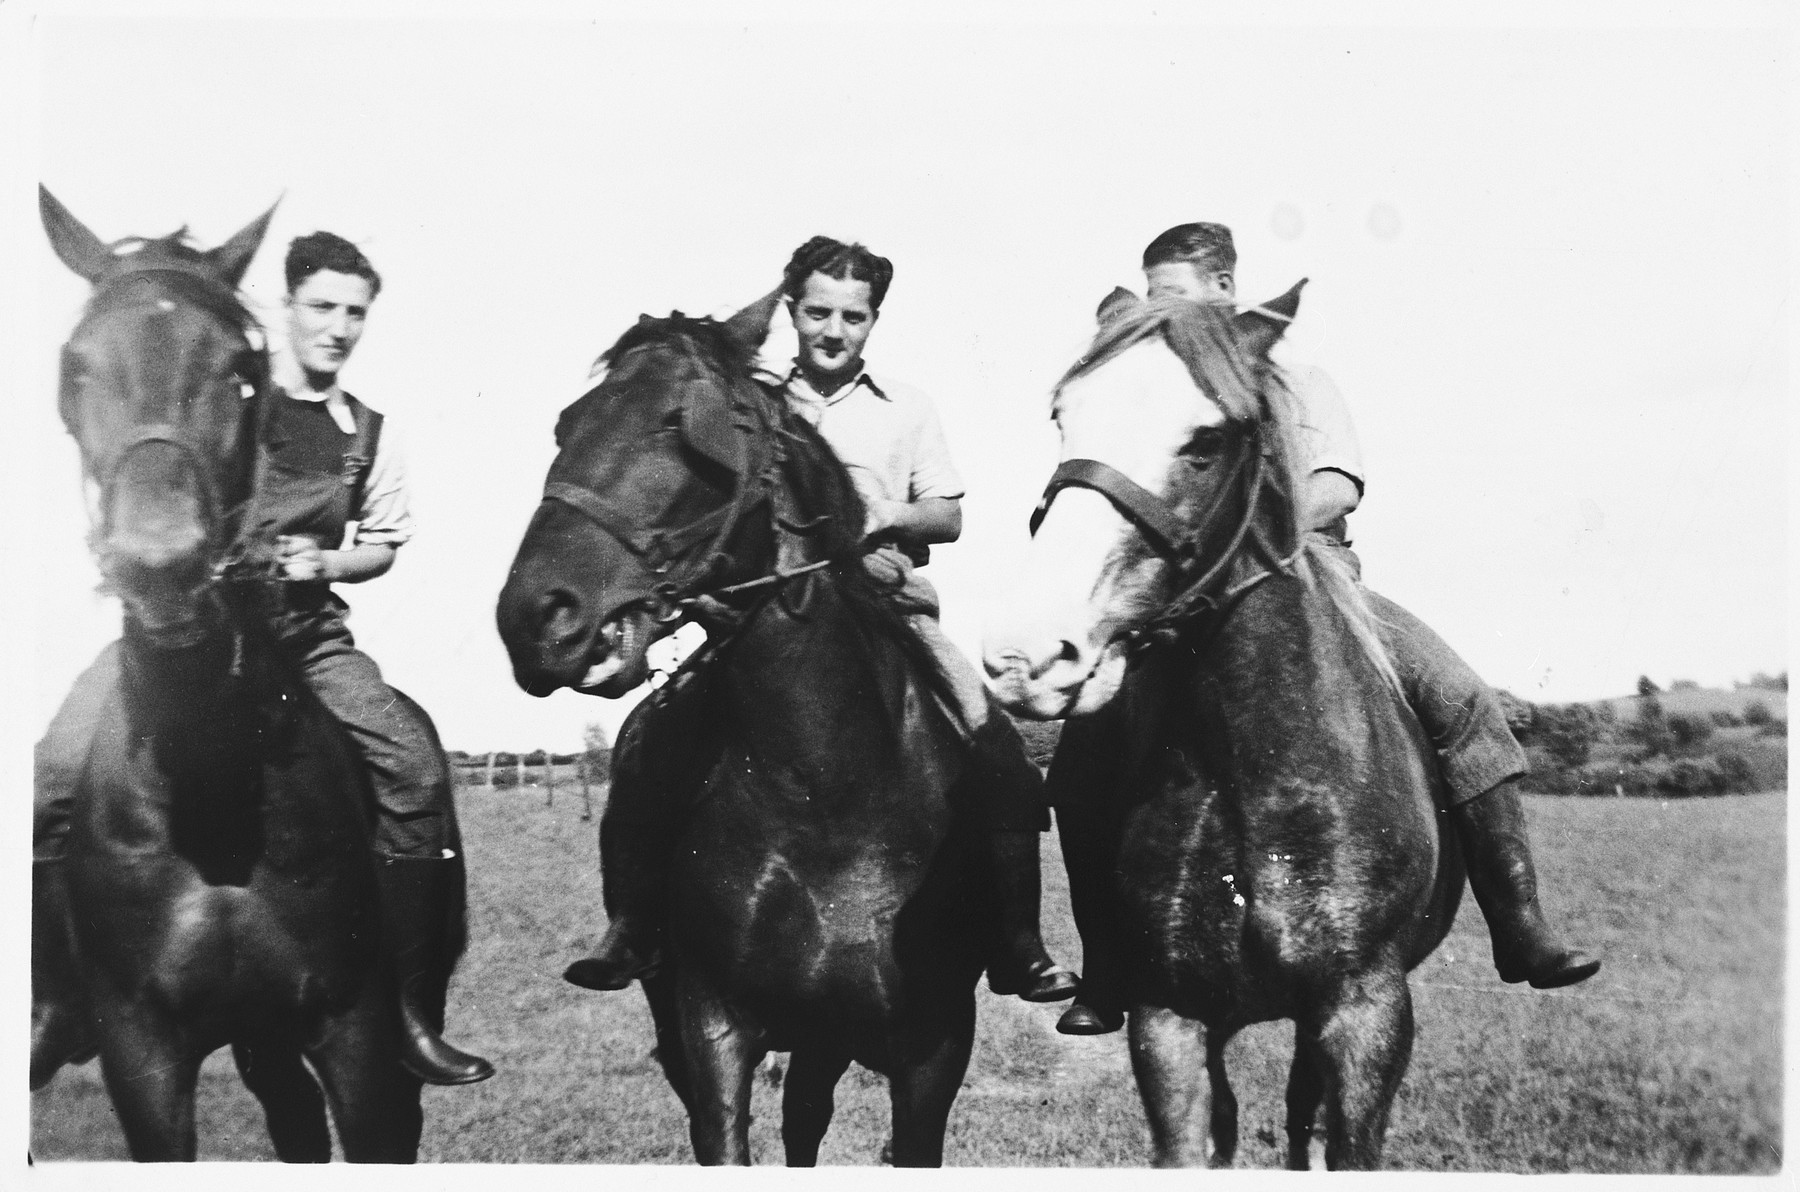 Three young Jewish refugees from Germany ride horses on a farm in the Jutland, where members of their hachshara [Zionist collective] are working.